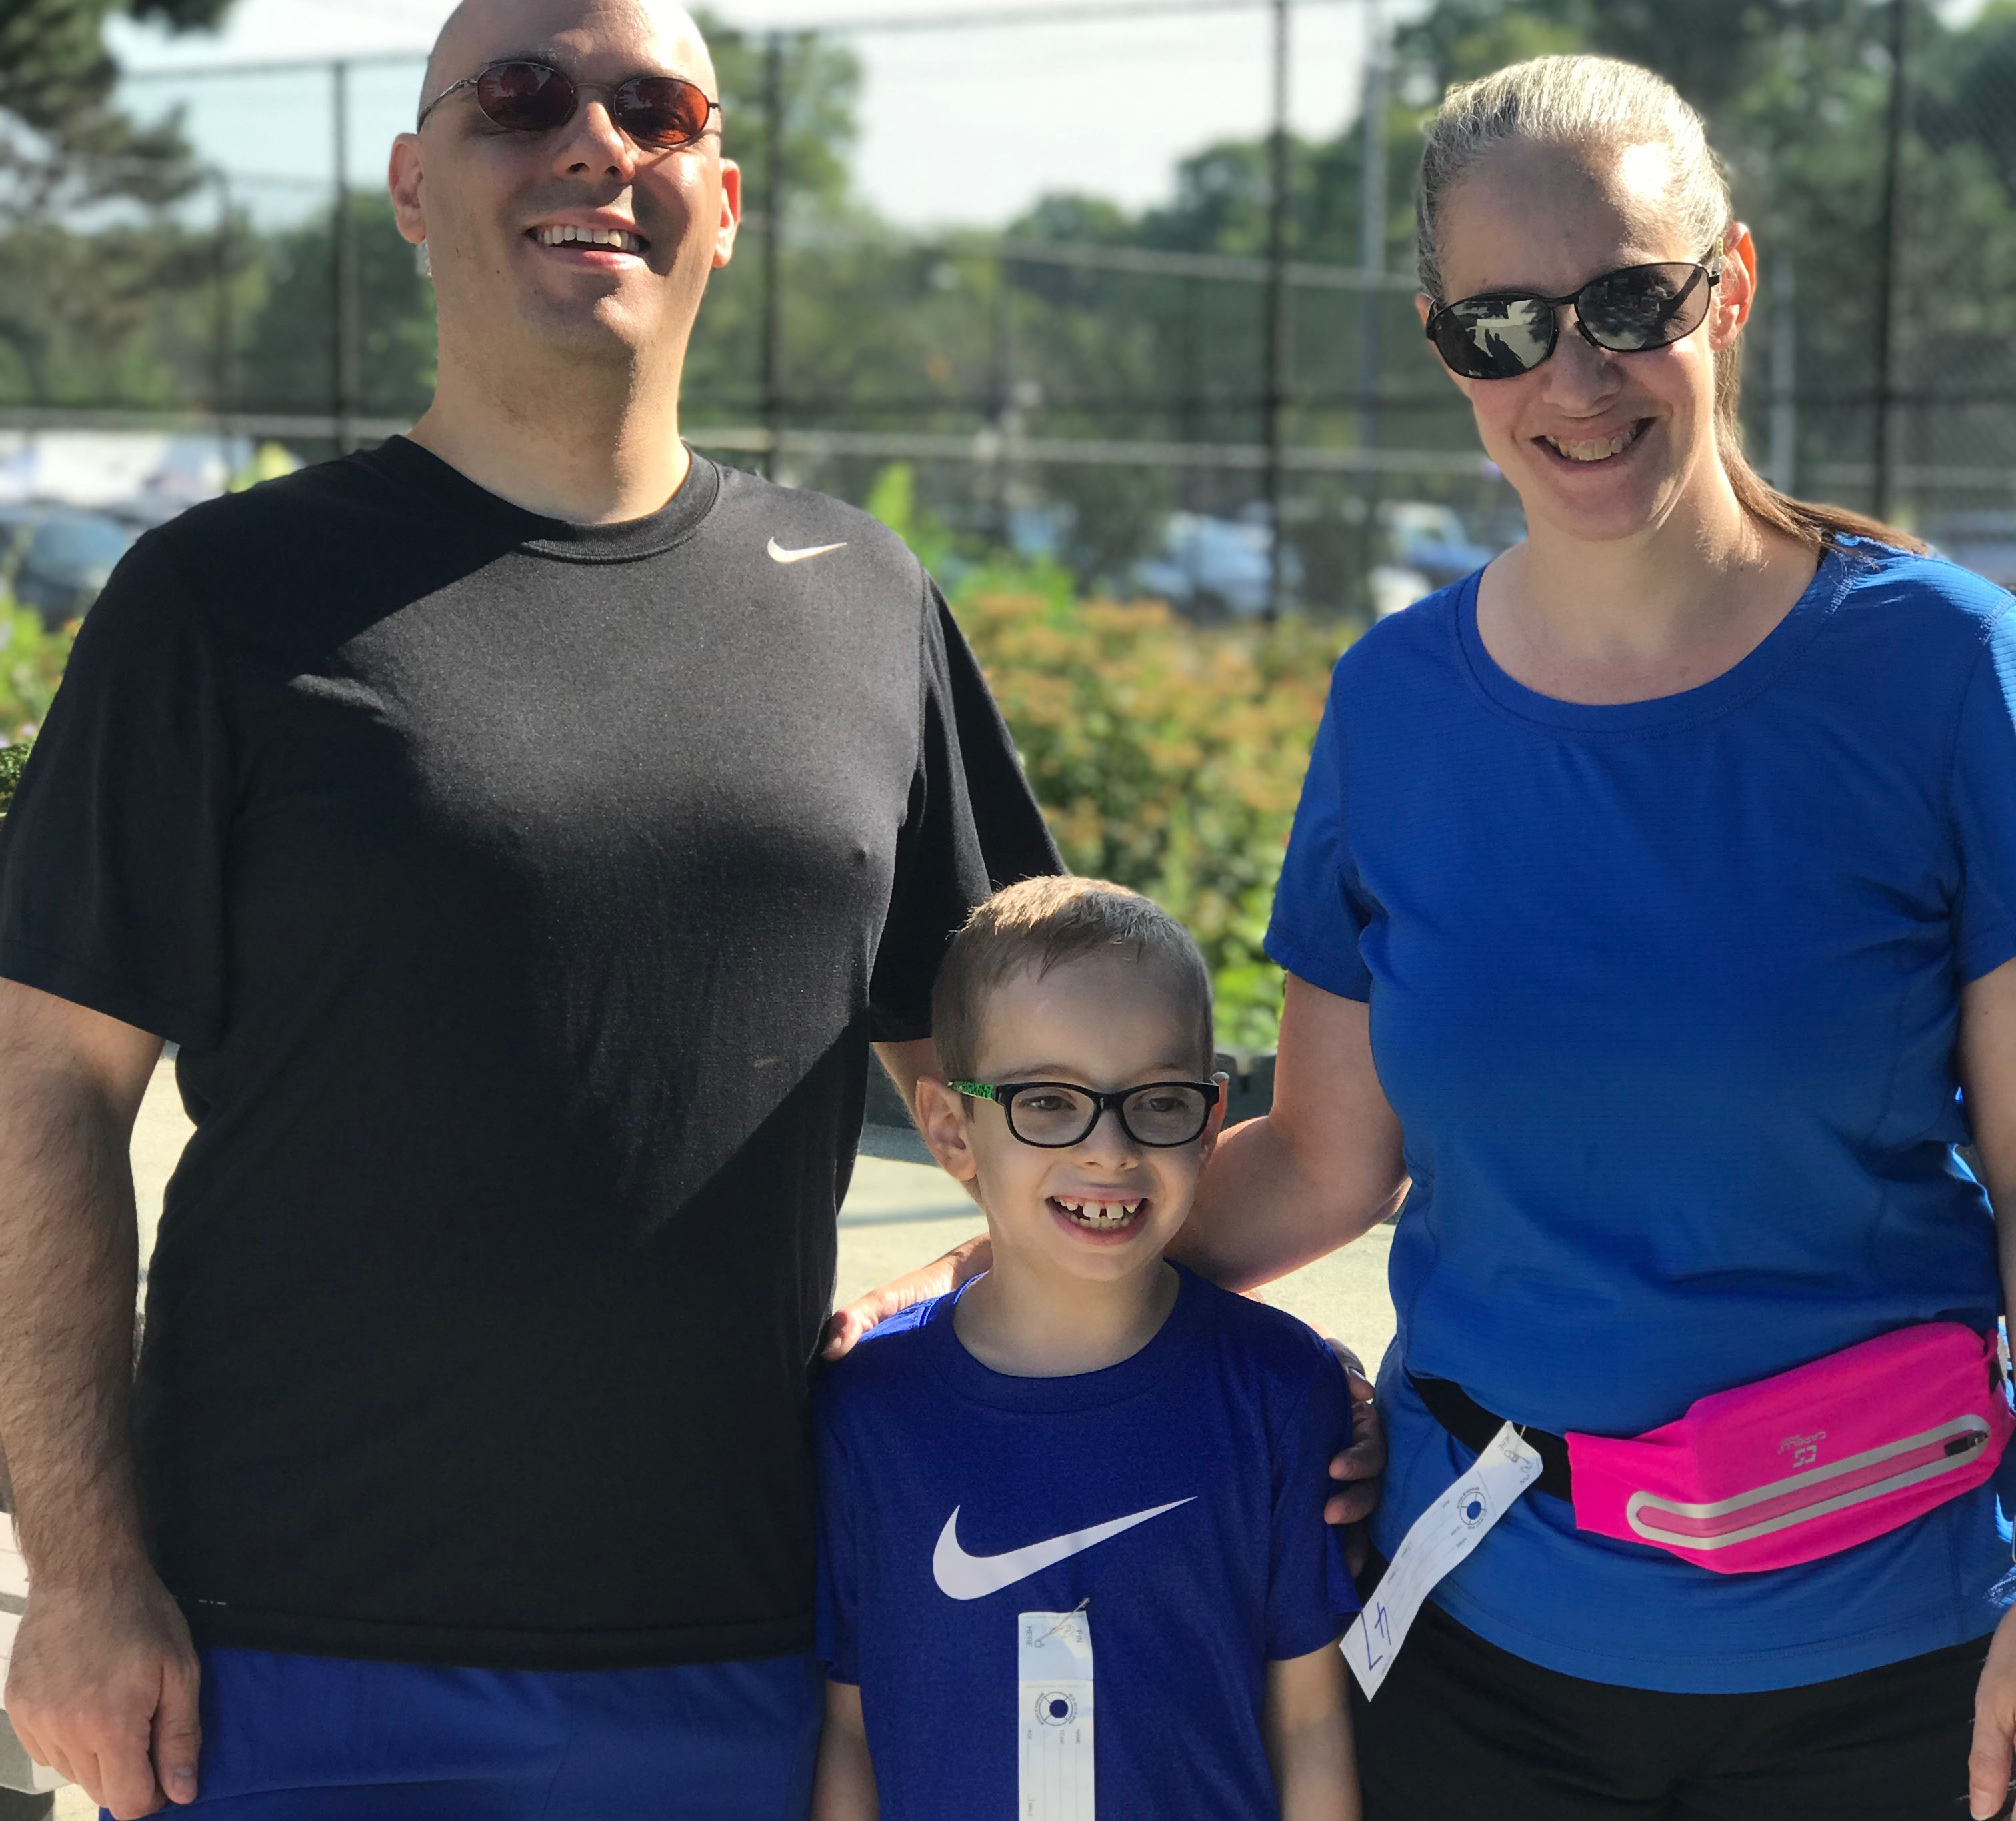 George Caggiano, center, with mom, Stacy, and dad, Steve.